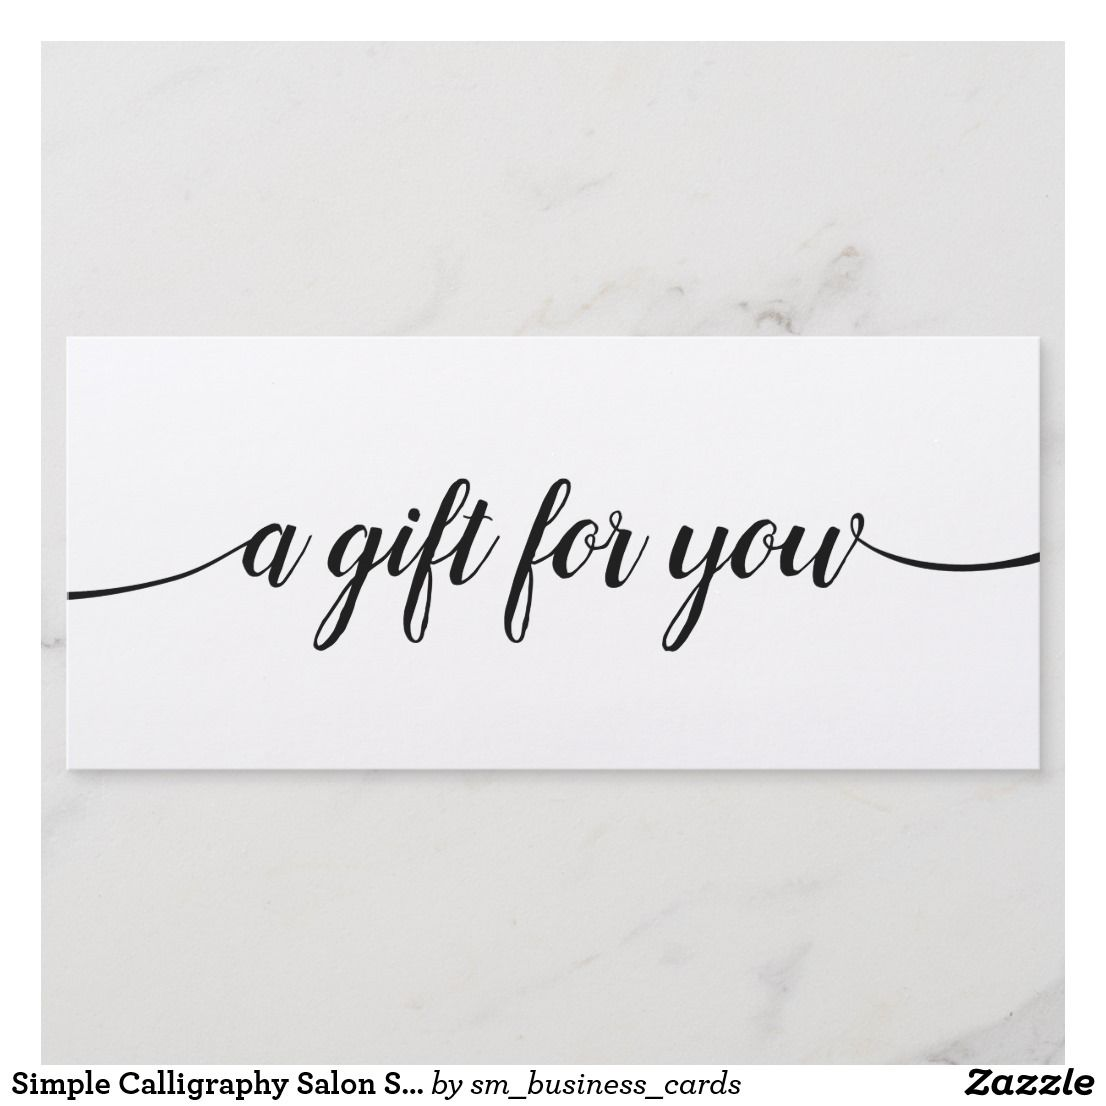 Simple Calligraphy Salon Spa Gift Certificate Fashion And Beauty